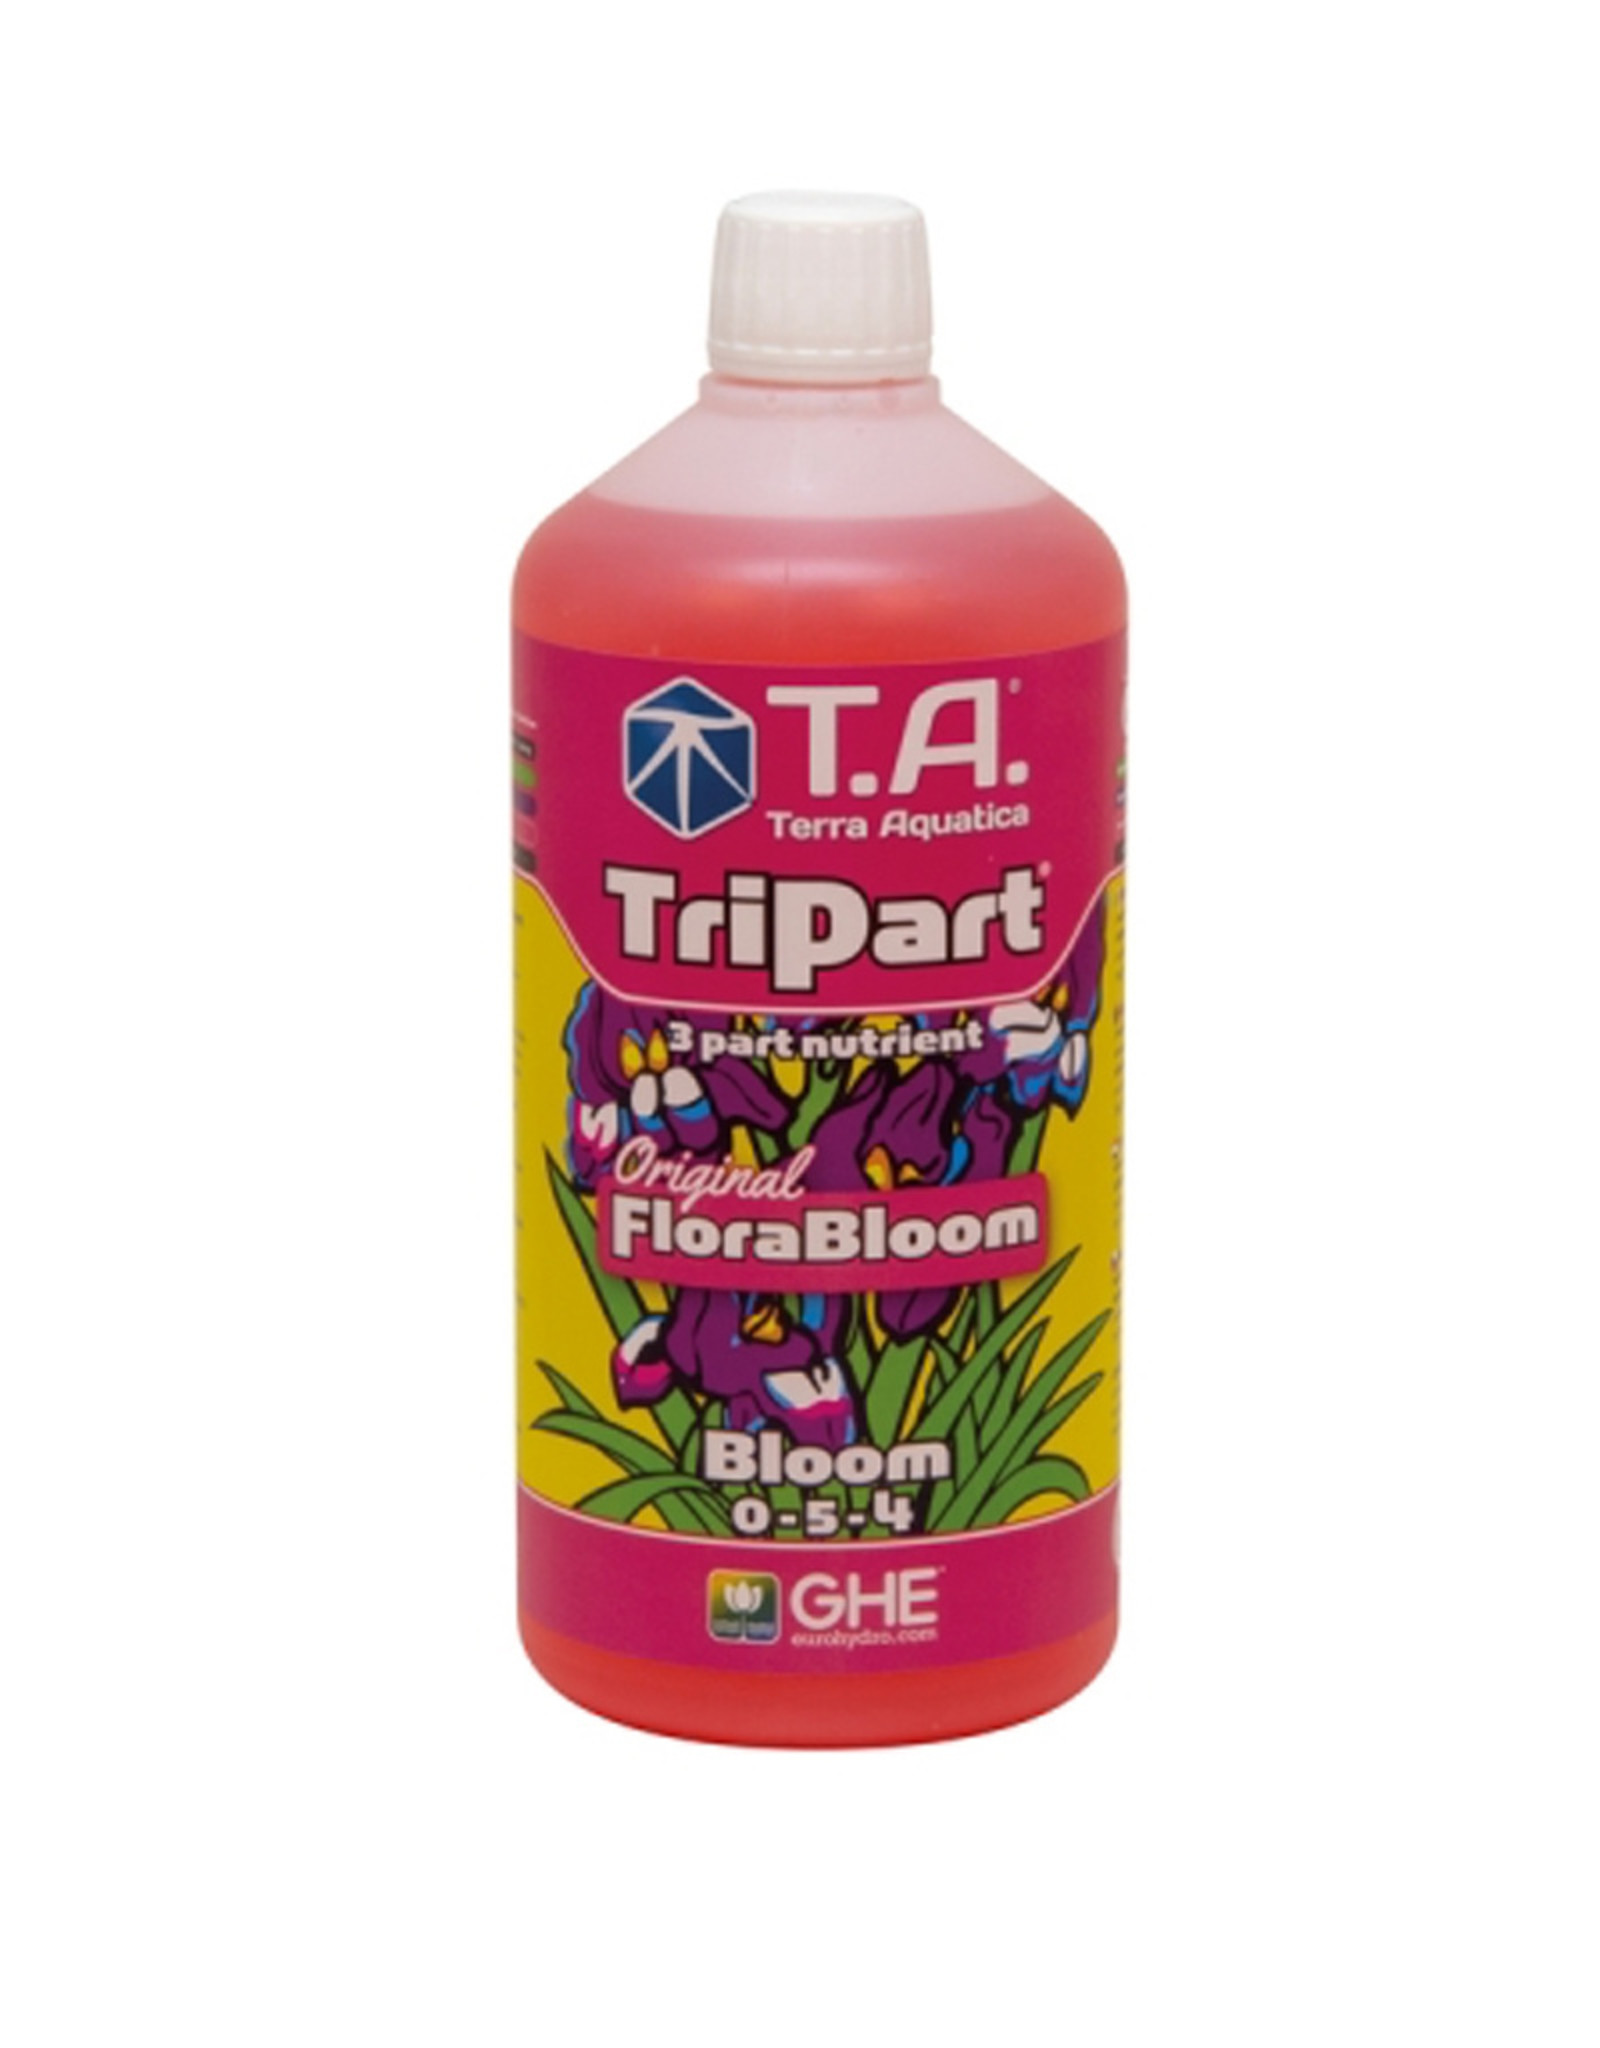 T.A. (GHE) T.A. FLORABLOOM